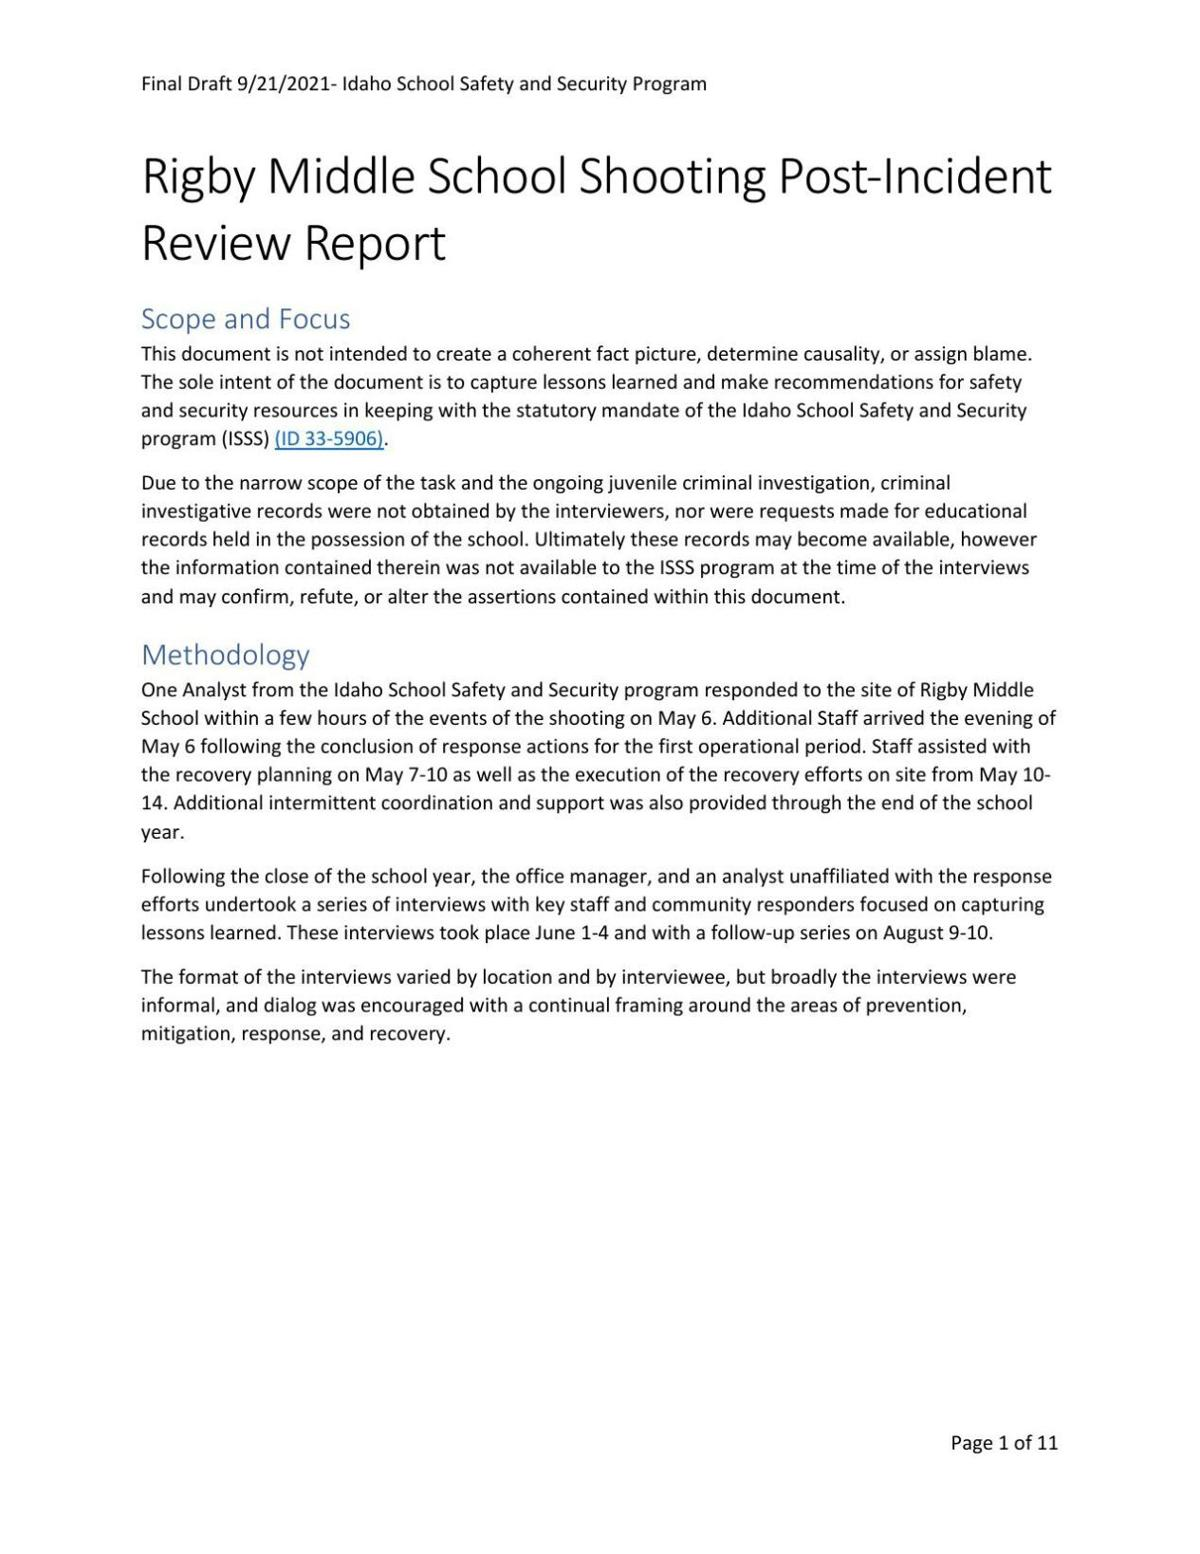 Rigby Middle School Shooting Post-Incident Review Report